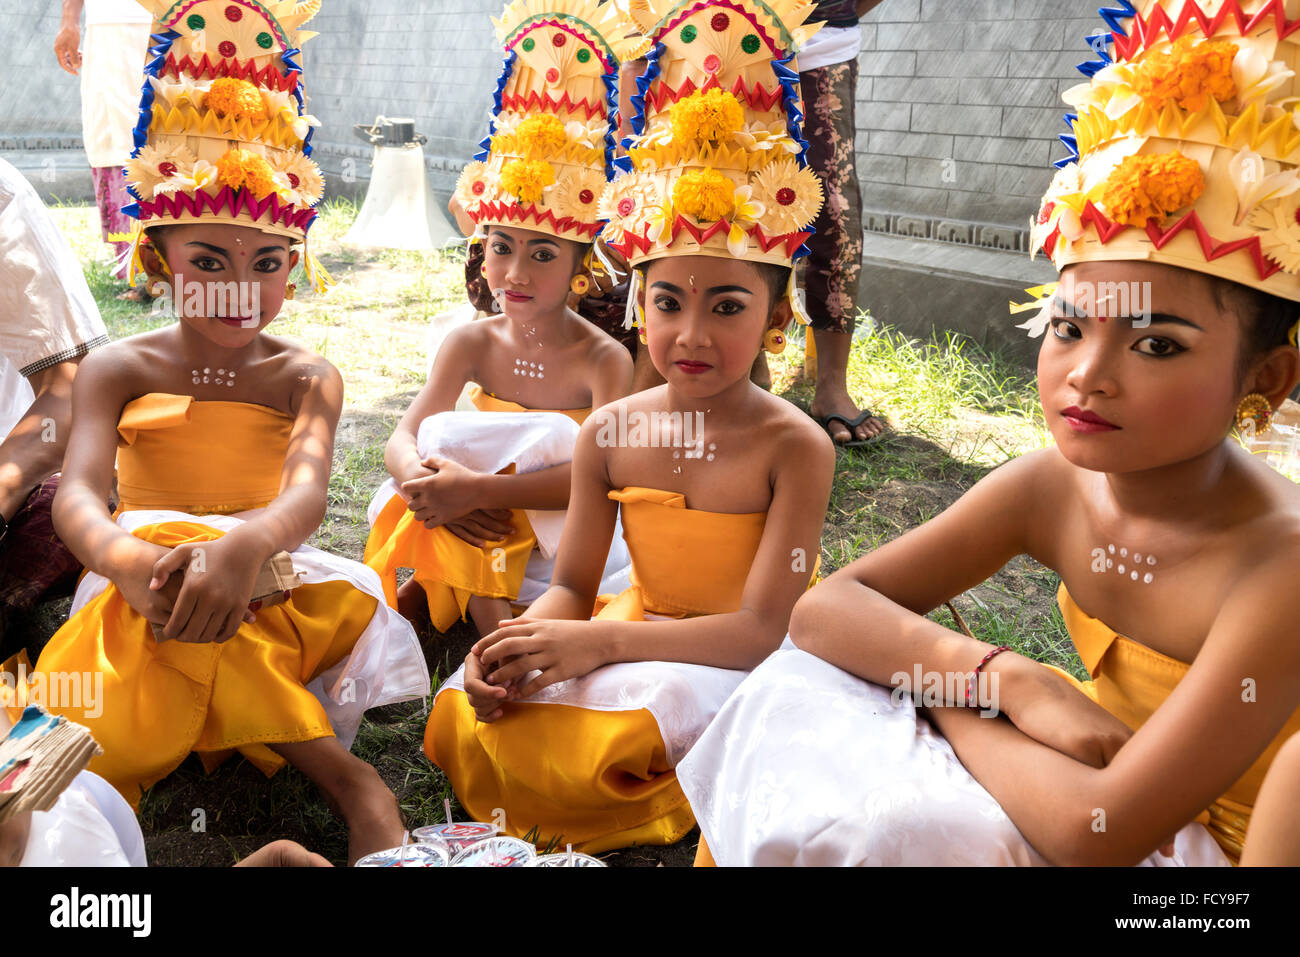 young Bali dancer waiting or their perfomance during a temple ceremony in Lovina Bali, Indonesia - Stock Image